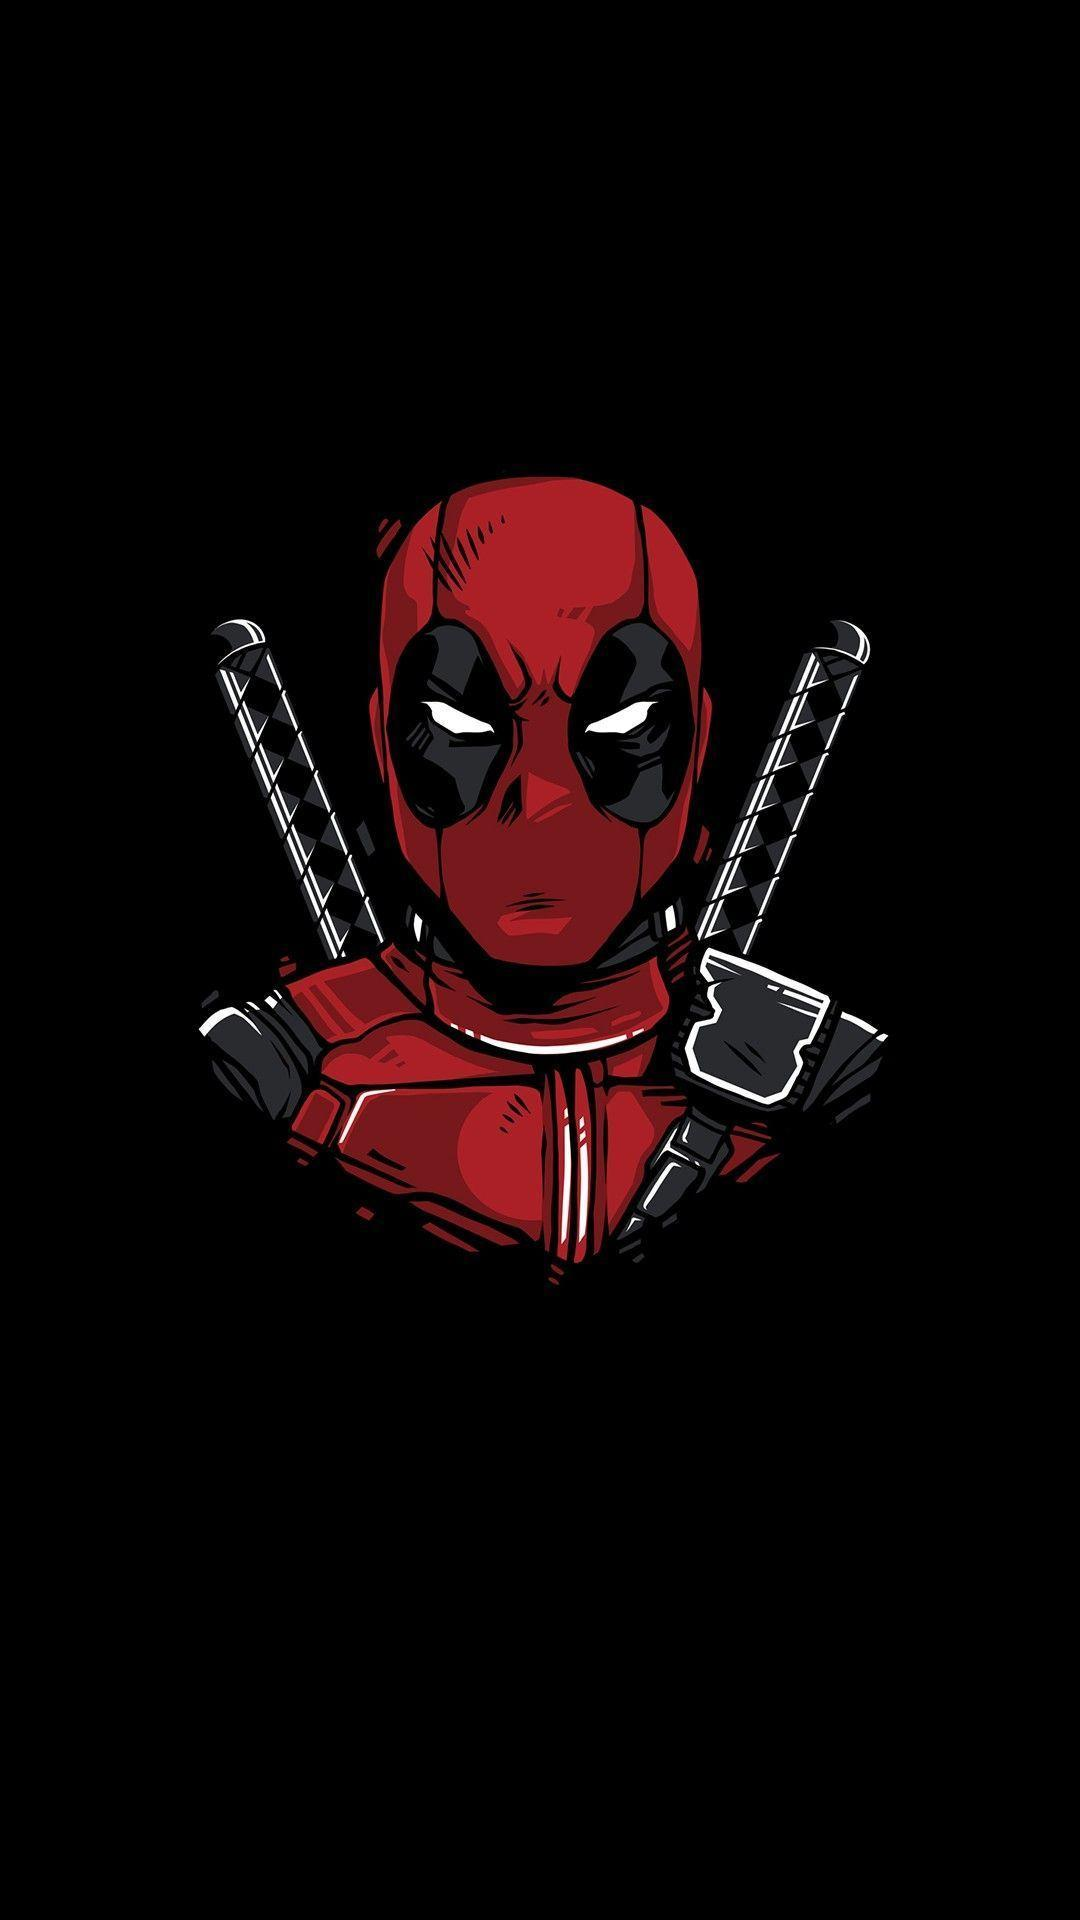 Deadpool Wallpaper Hd For Mobile Pictures